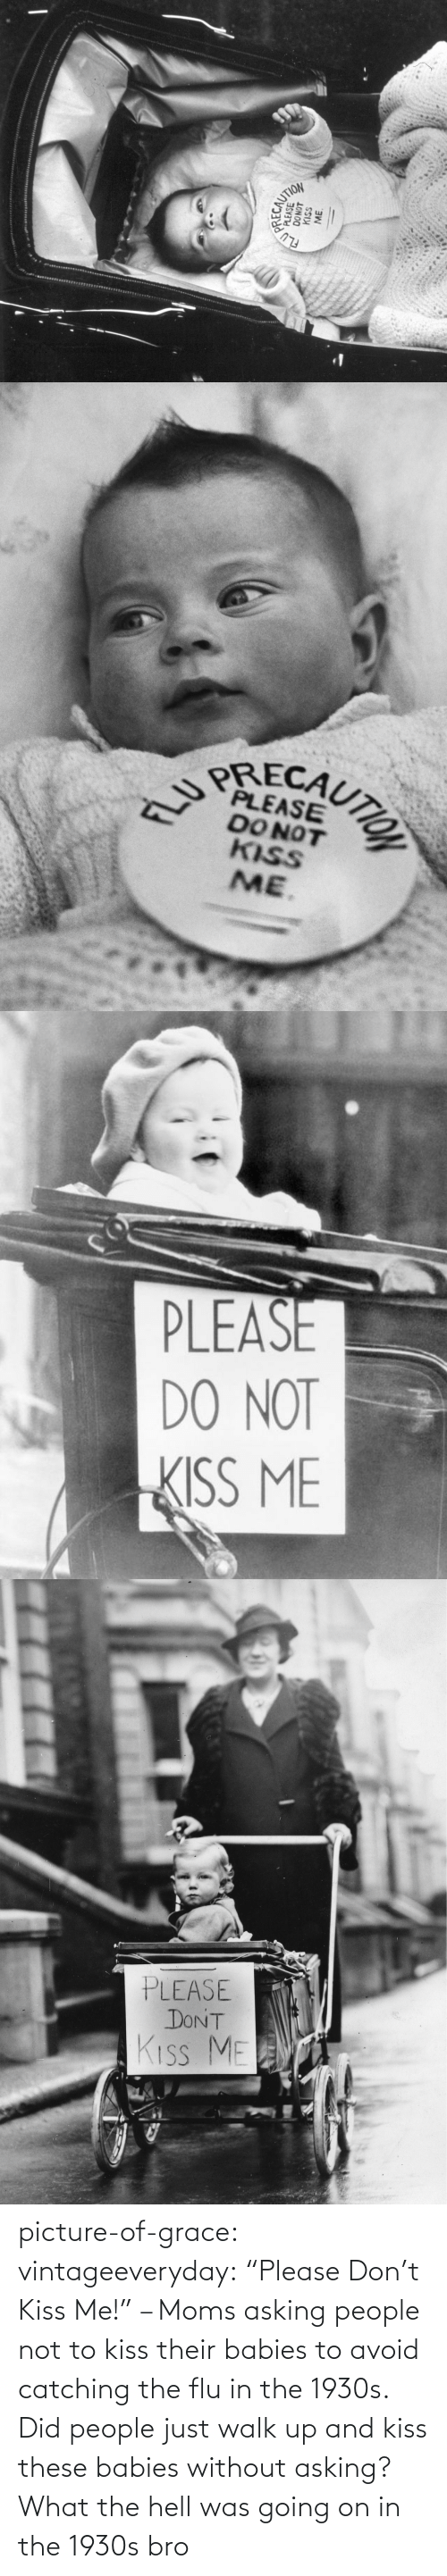 "what-the-hell: picture-of-grace:  vintageeveryday: ""Please Don't Kiss Me!"" – Moms asking people not to kiss their babies to avoid catching the flu in the 1930s.   Did people just walk up and kiss these babies without asking? What the hell was going on in the 1930s bro"